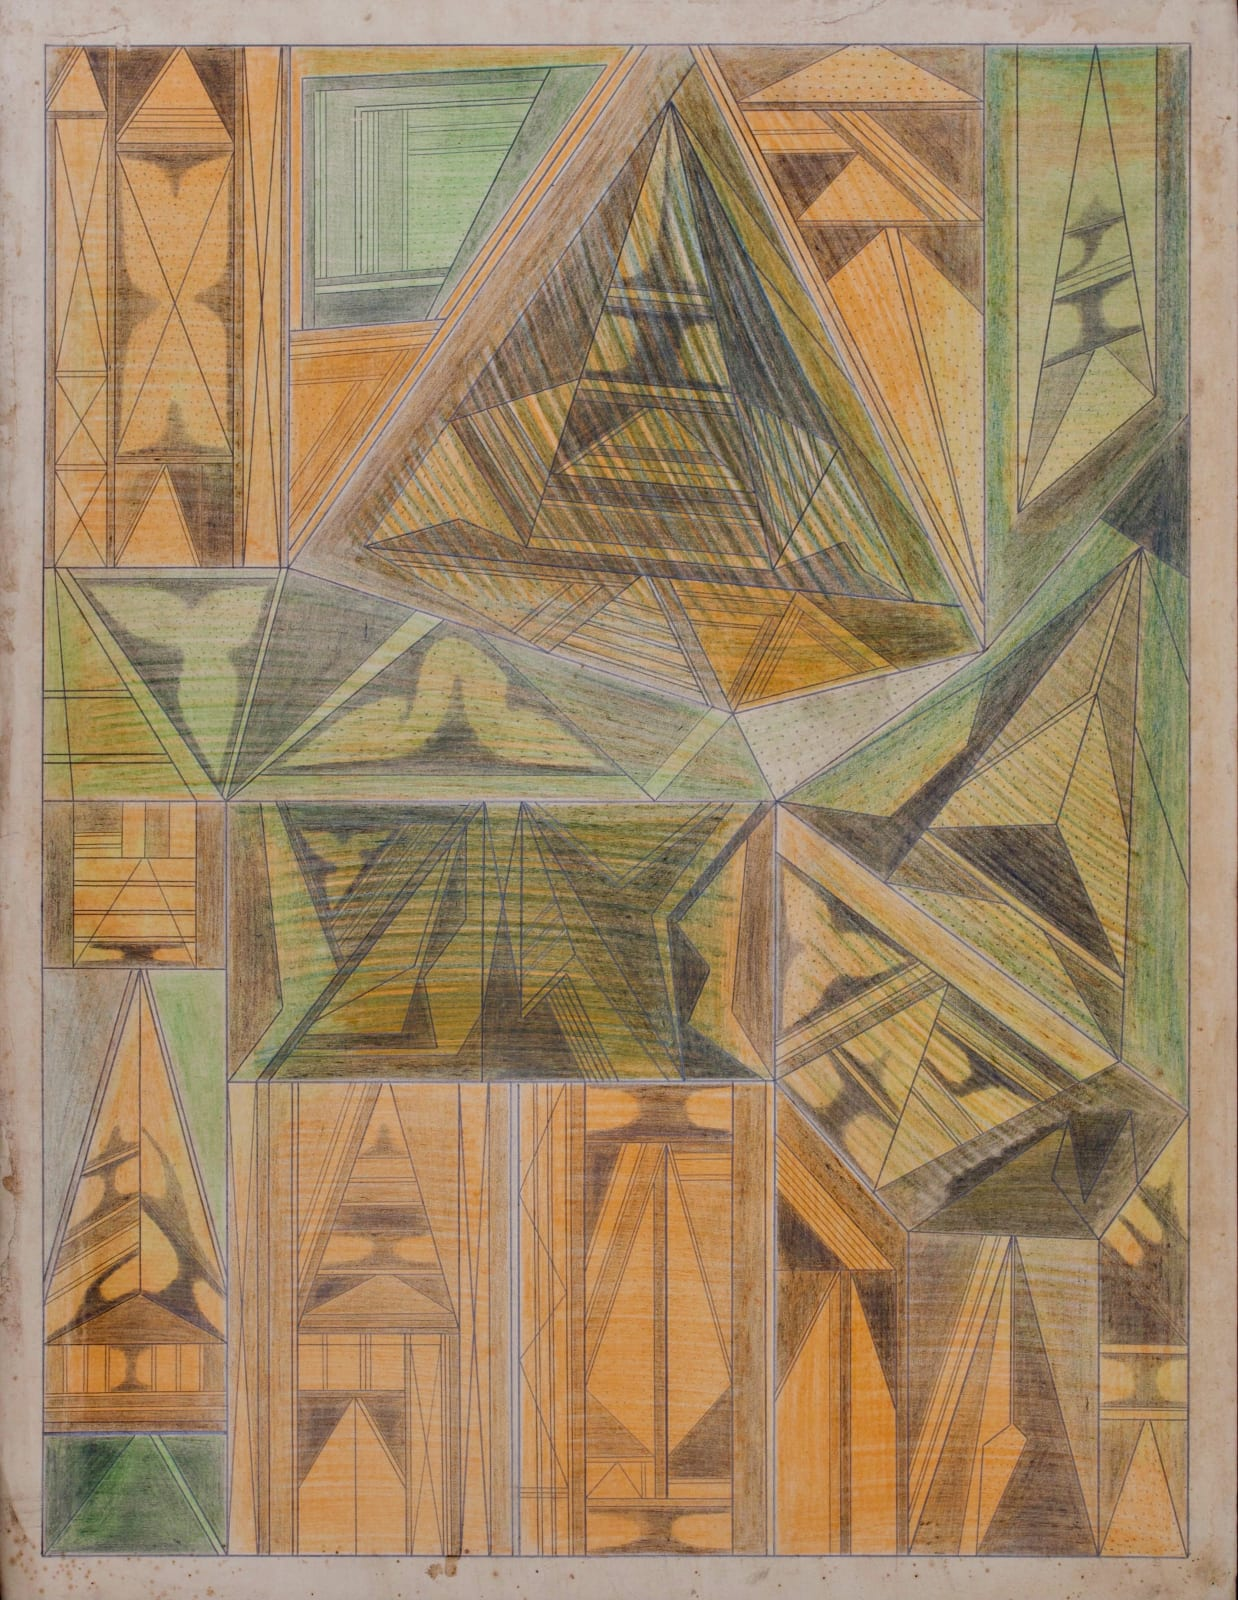 Untitled, ca. 1930 - 55 Colored pencil and graphite on paper 21 x 17 1/2 in. 53.3 x 44.5 cm. (DG 44)